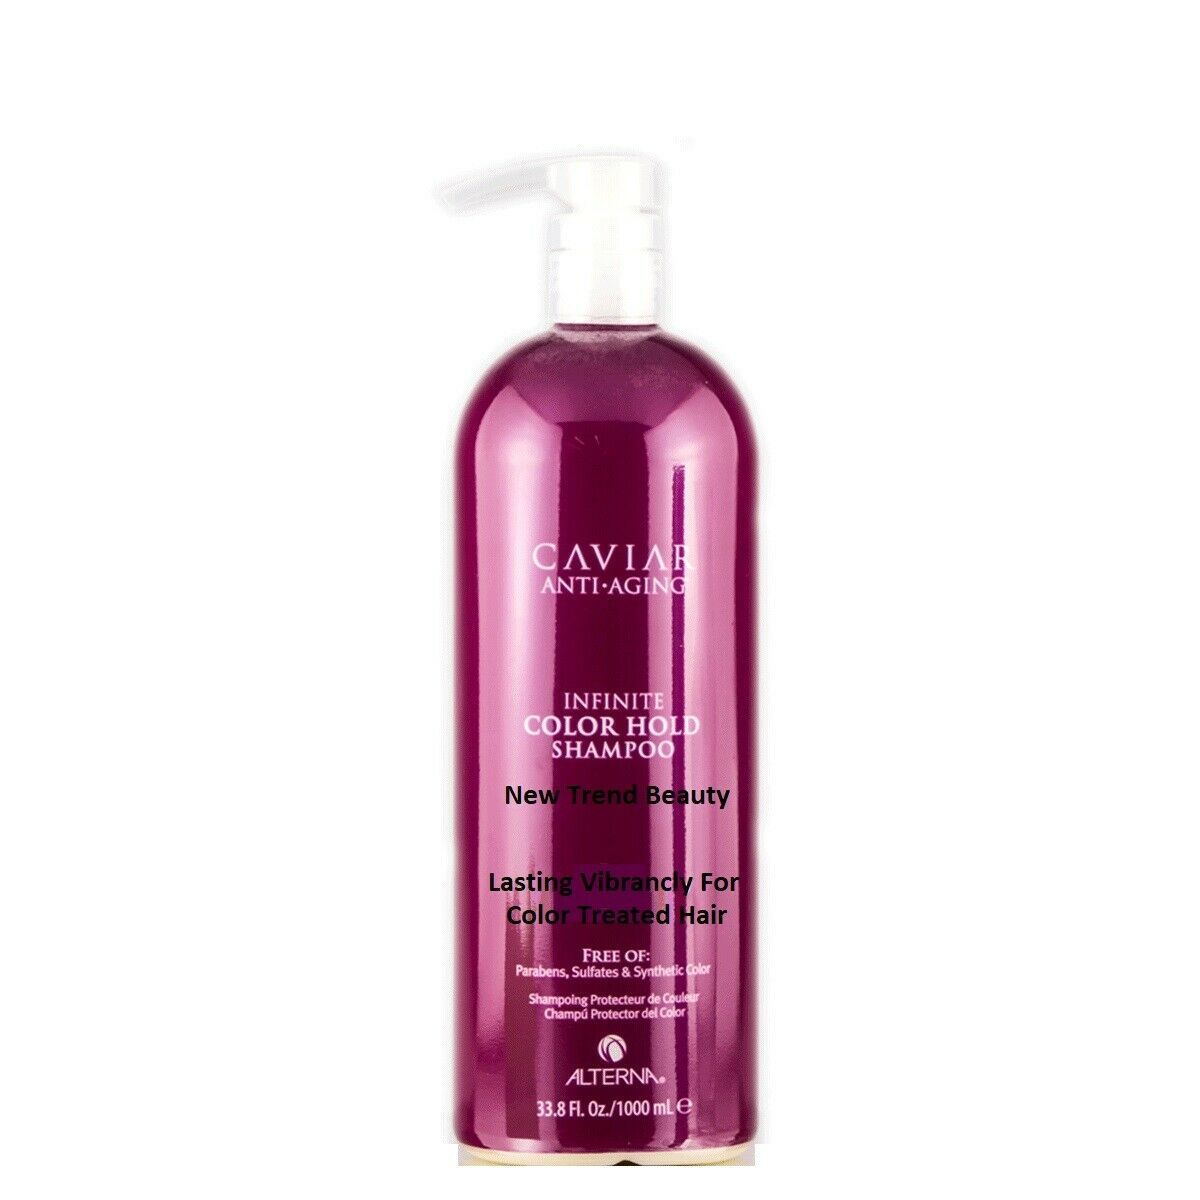 Alterna Caviar Anti-Aging Infinite Color Hold Shampoo 33.8oz - $41.26